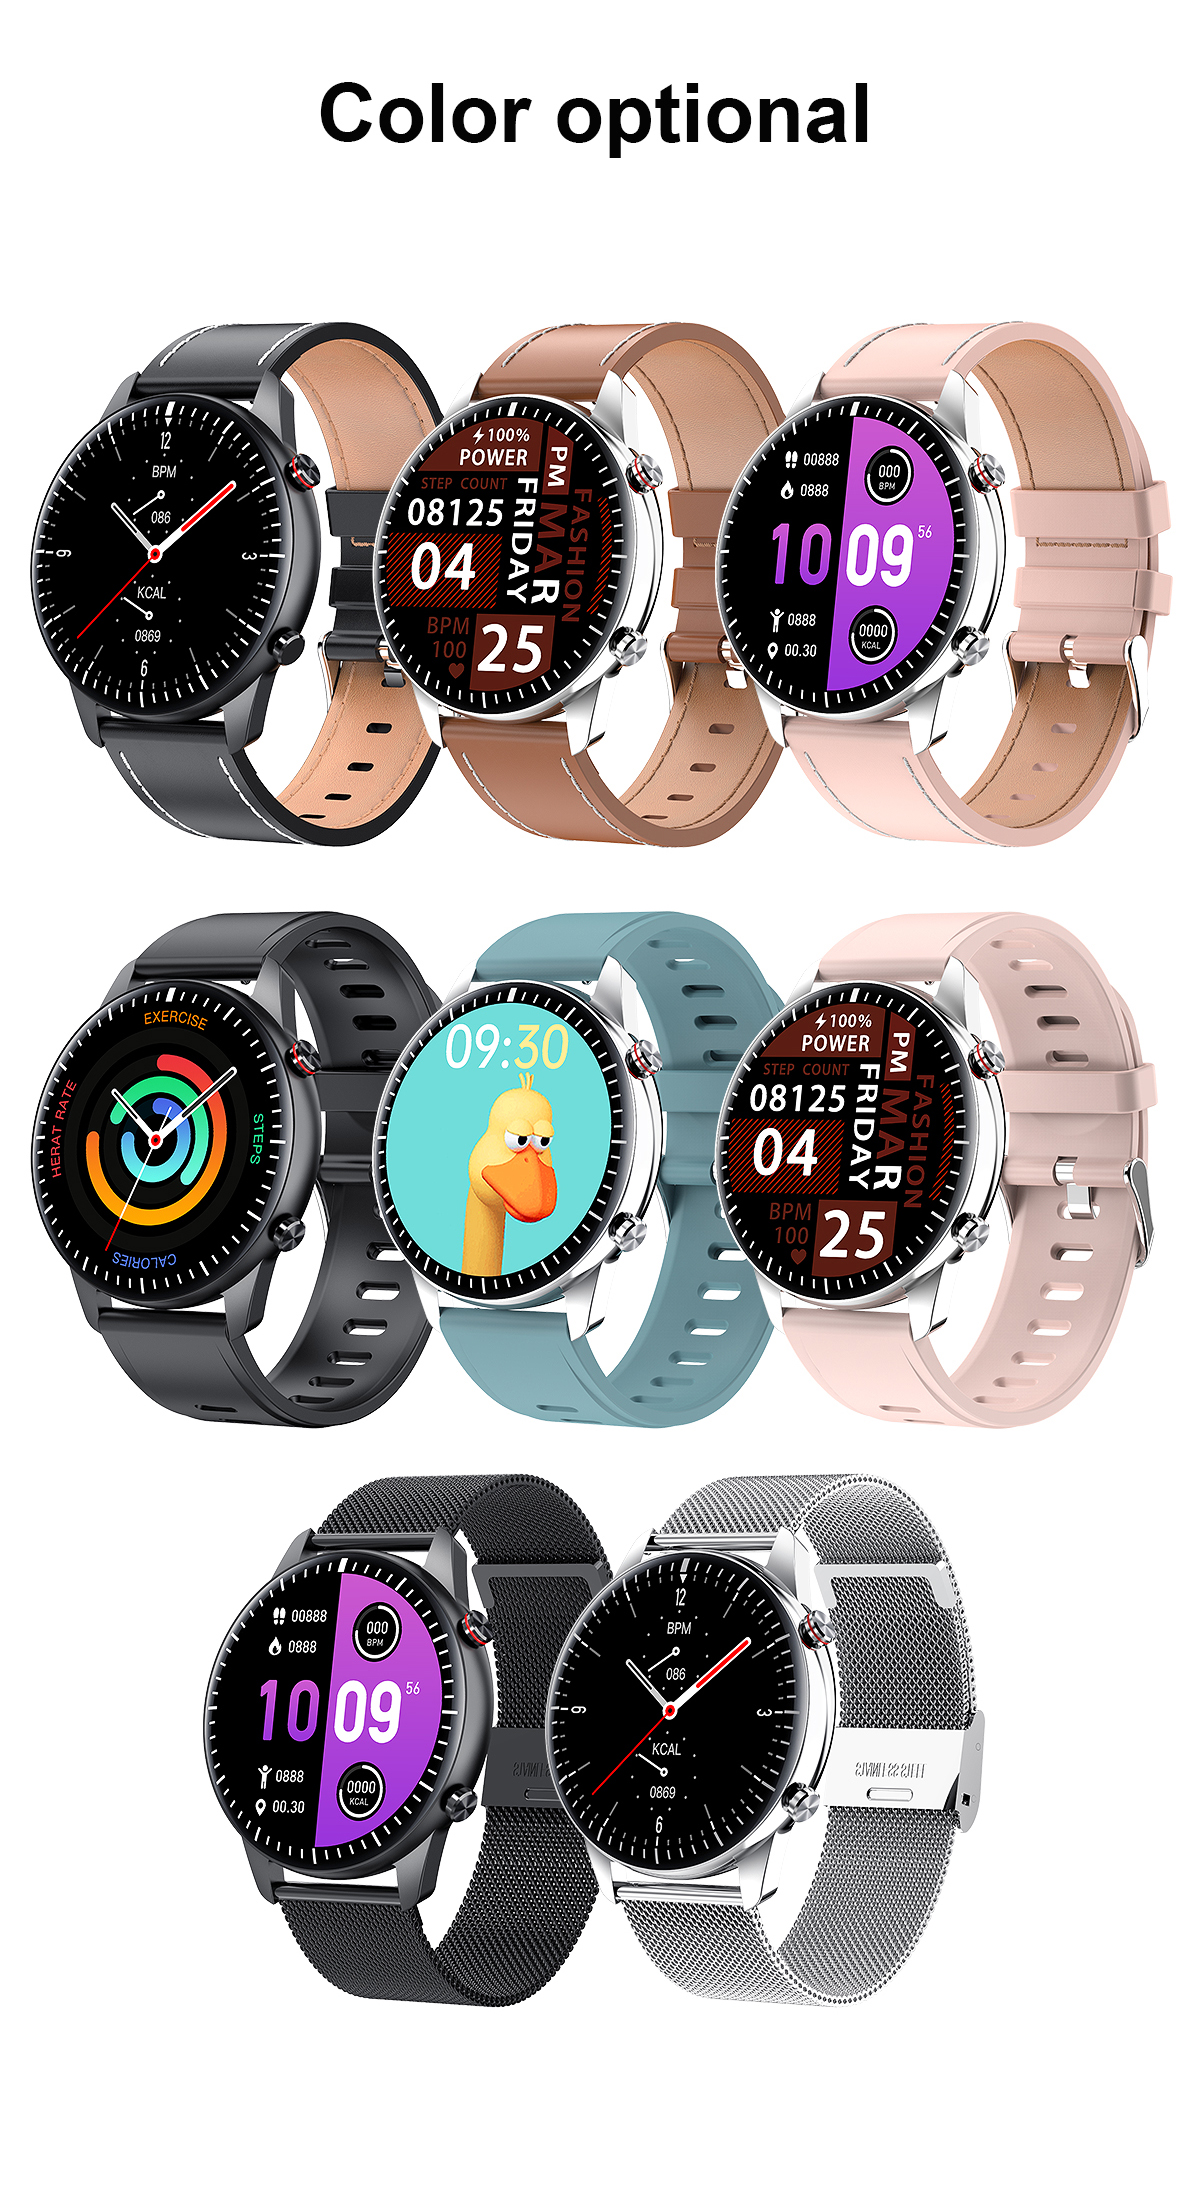 H7bbc5f6927514c52839637034f26cb48b 2021 NEW Smart Watch Women Men Full Touch Fitness Tracker IP67 Waterproof Smartwatch For Android Xiaomi Redmi